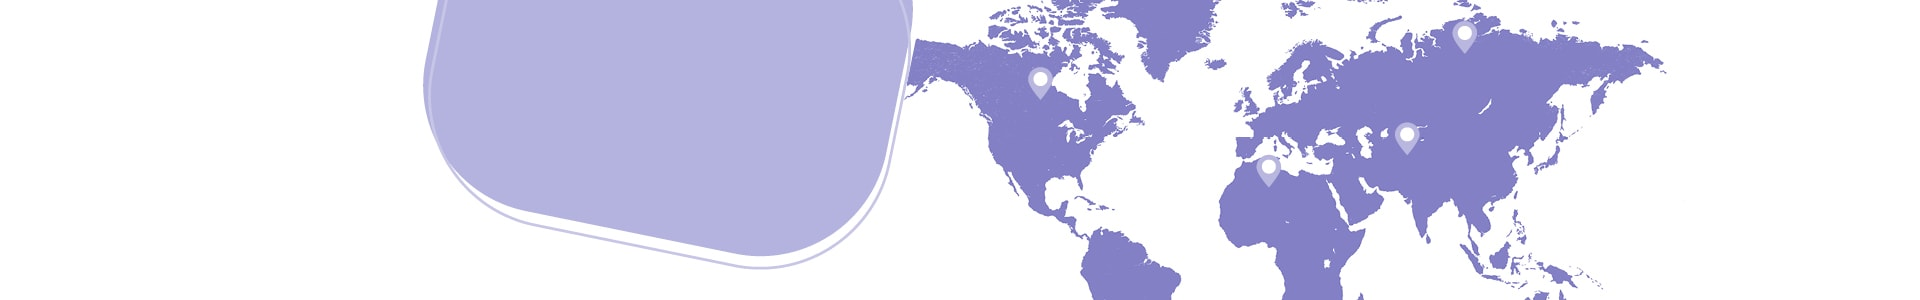 Bambino Mio UK storefinder page banner with purple world map